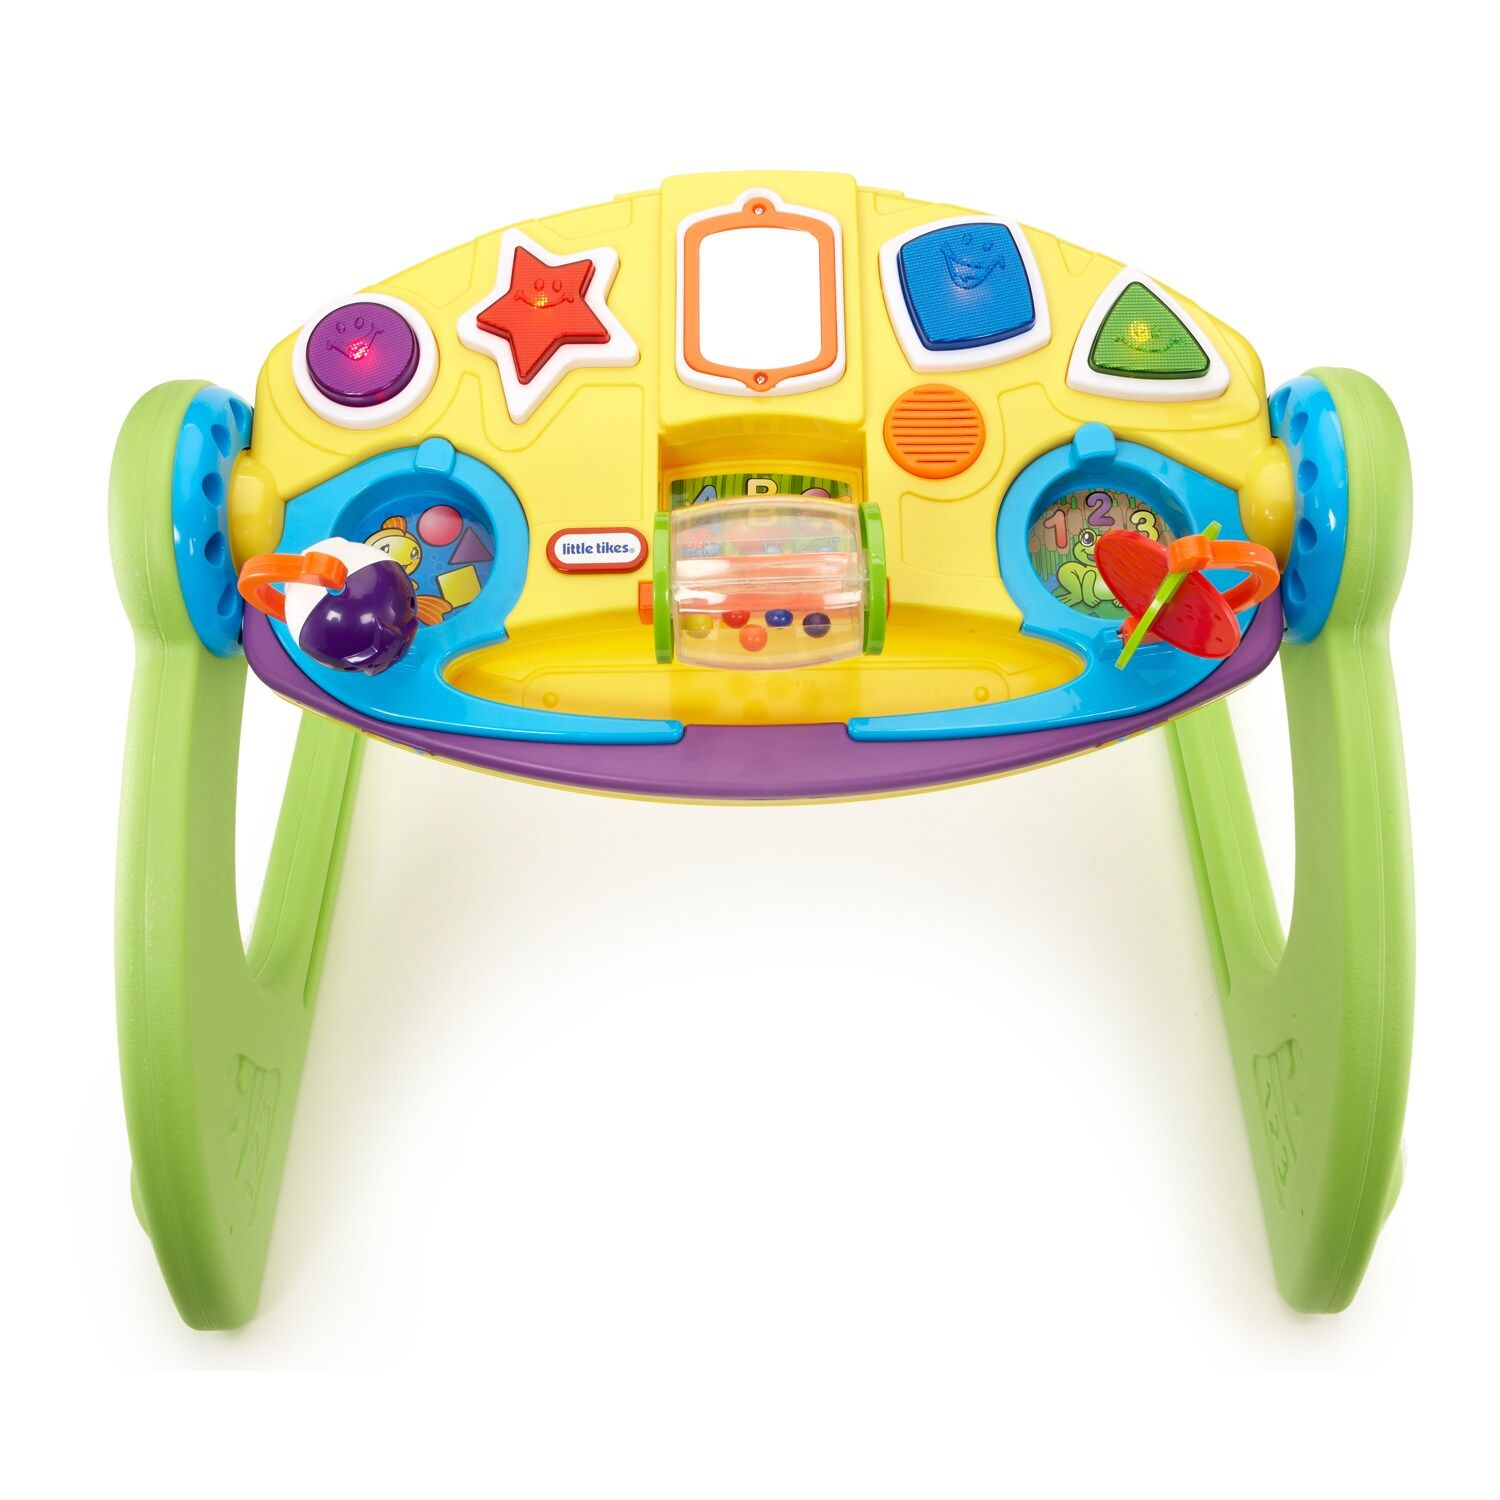 Little Tikes 5 In 1 Adjustable Gym Tikes Adjustable Gym In